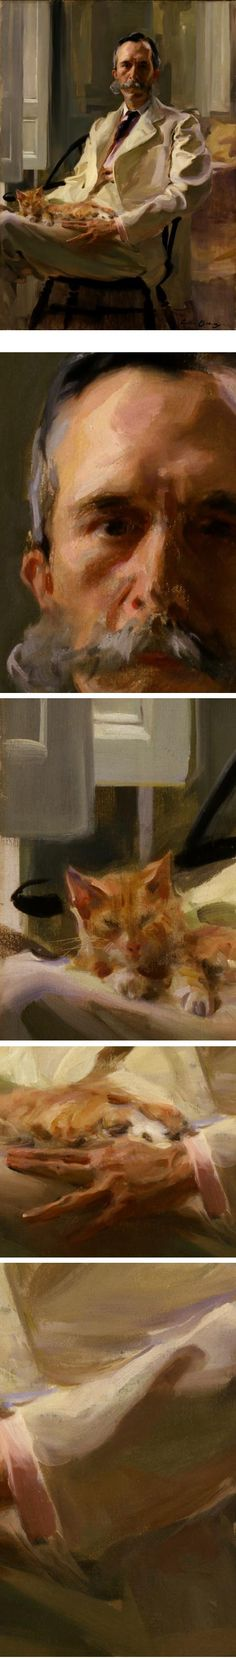 Man with the Cat (Henry Sturgis Drinker), by Cecilia Beaux. One of the great portraits.